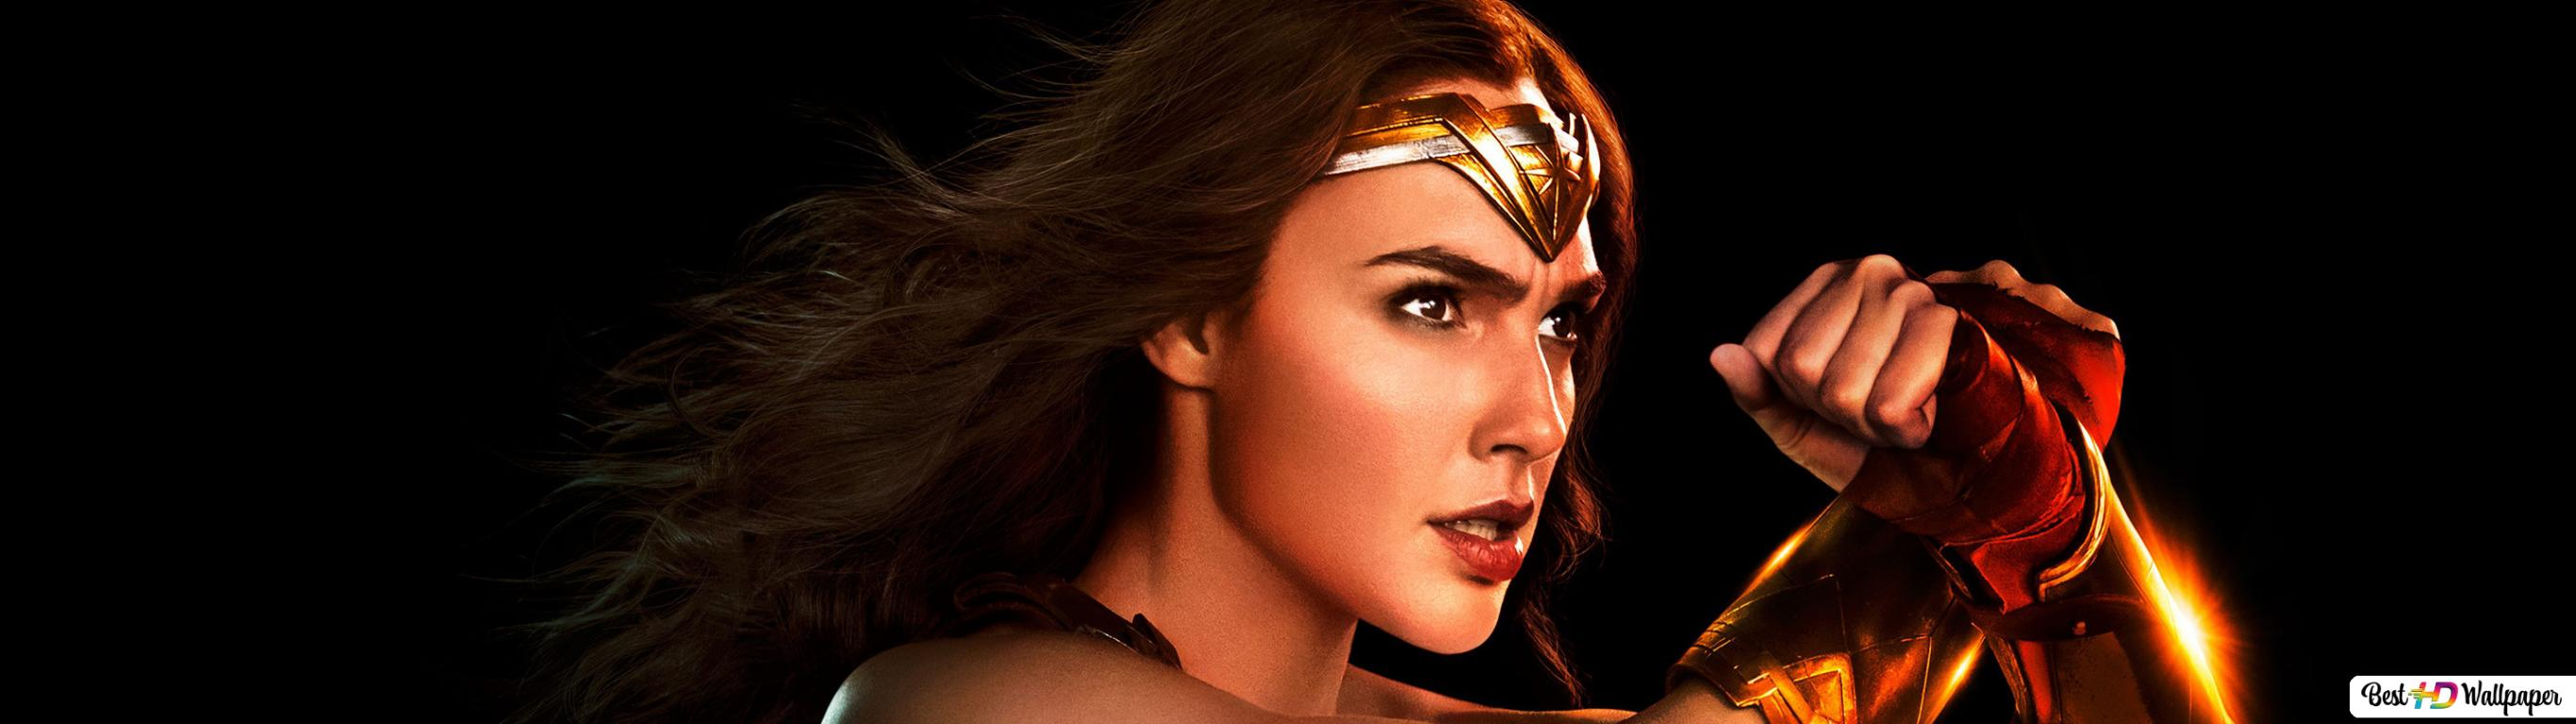 Justice League Gal Gadot As Wonder Woman Hd Wallpaper Download